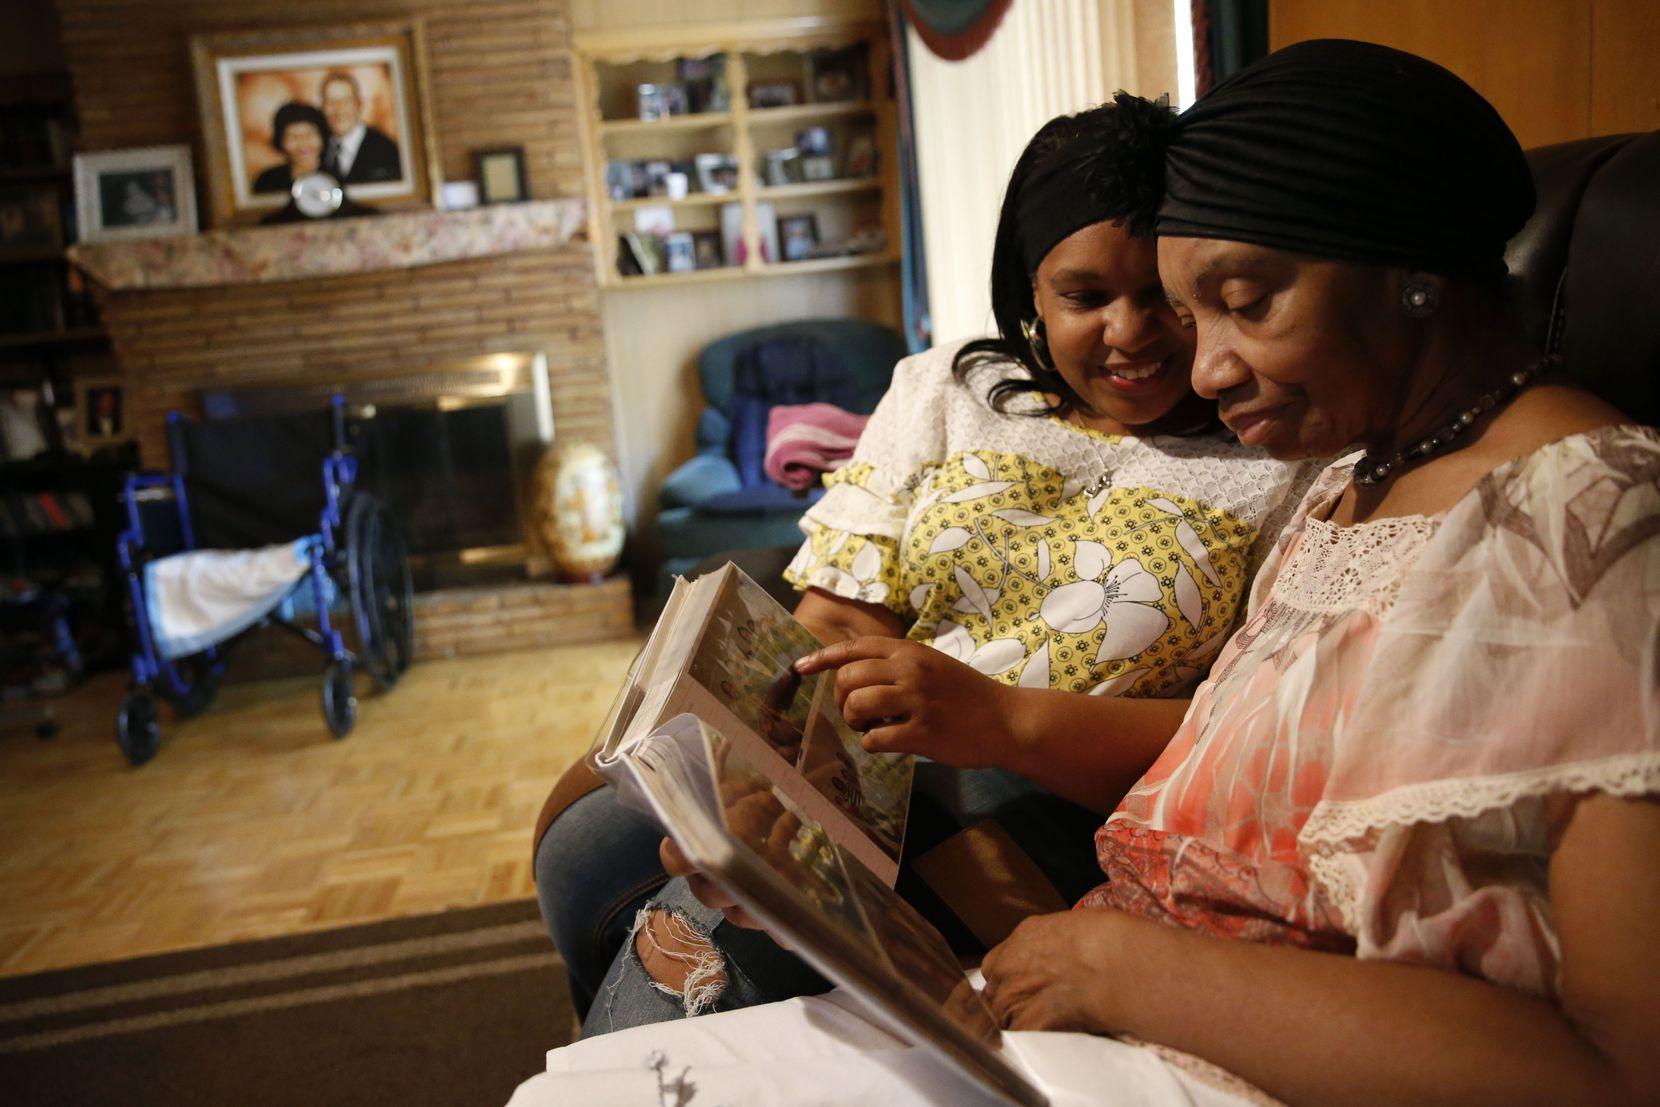 Jennifer Greer (left) looks through a photo album with her mother, Carolyn Greer. Jennifer says flash cards and other brain activities slowed her mother's decline from dementia.